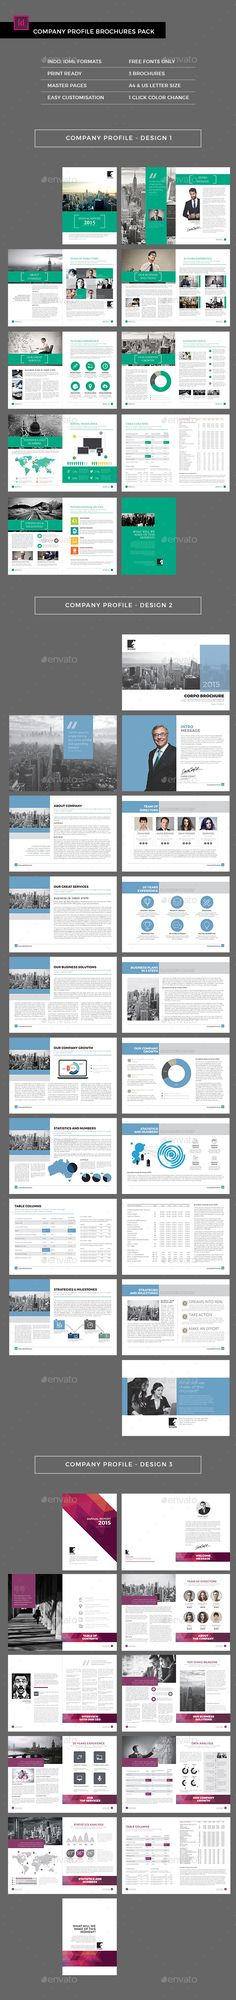 Company Profile Brochure Company profile, Brochure template and - company profile sample download